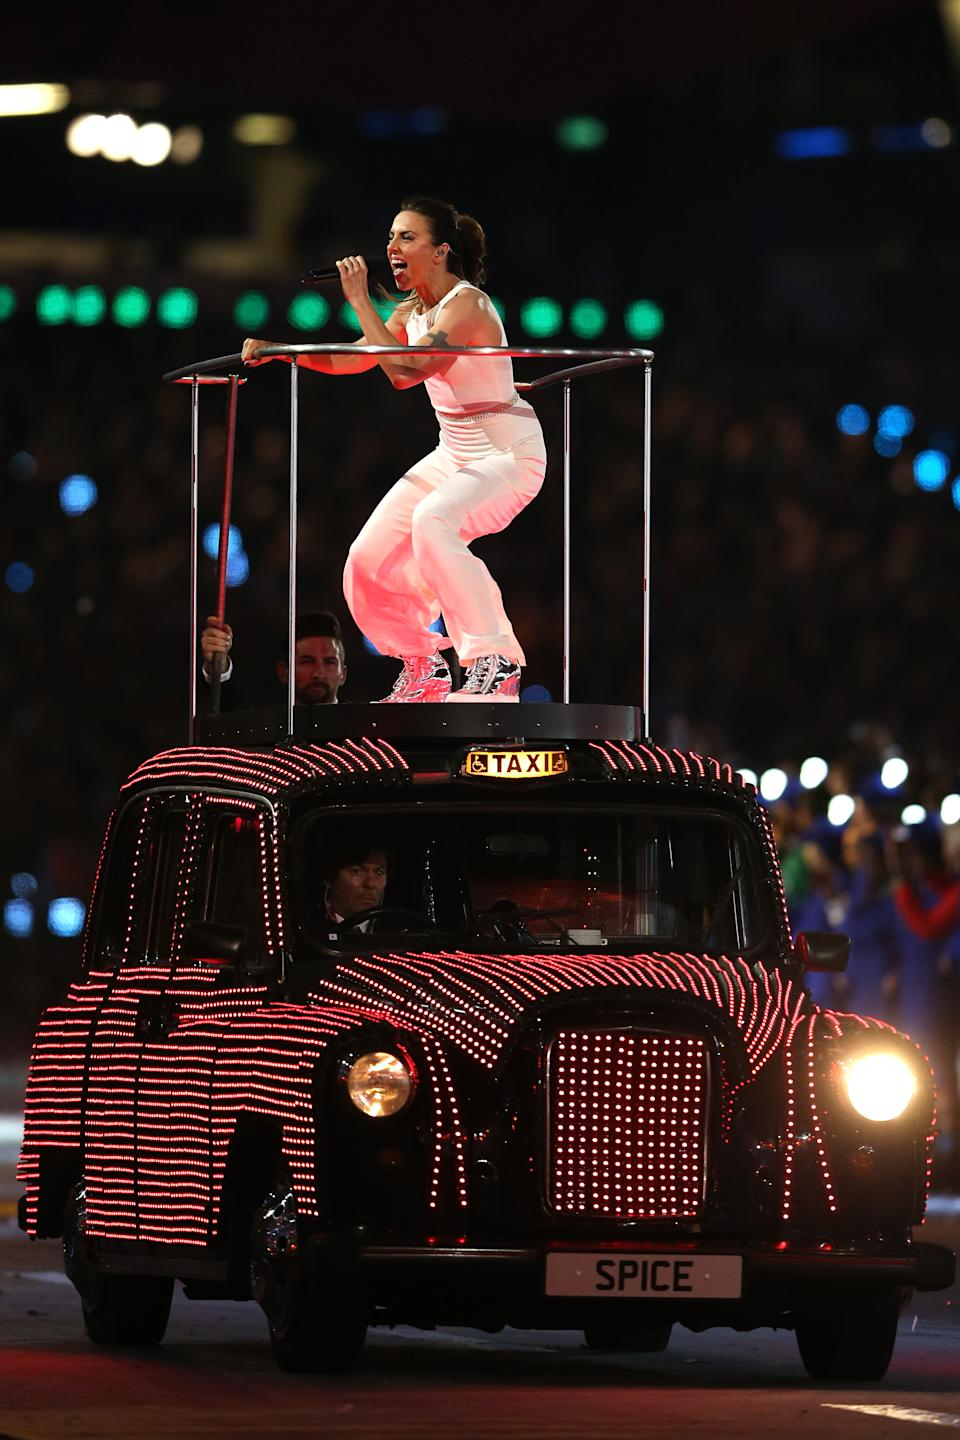 NOW: Melanie Chisholm of Spice Girls performs during the Closing Ceremony on Day 16 of the London 2012 Olympic Games at Olympic Stadium on August 12, 2012 in London, England. (Photo by Scott Heavey/Getty Images)